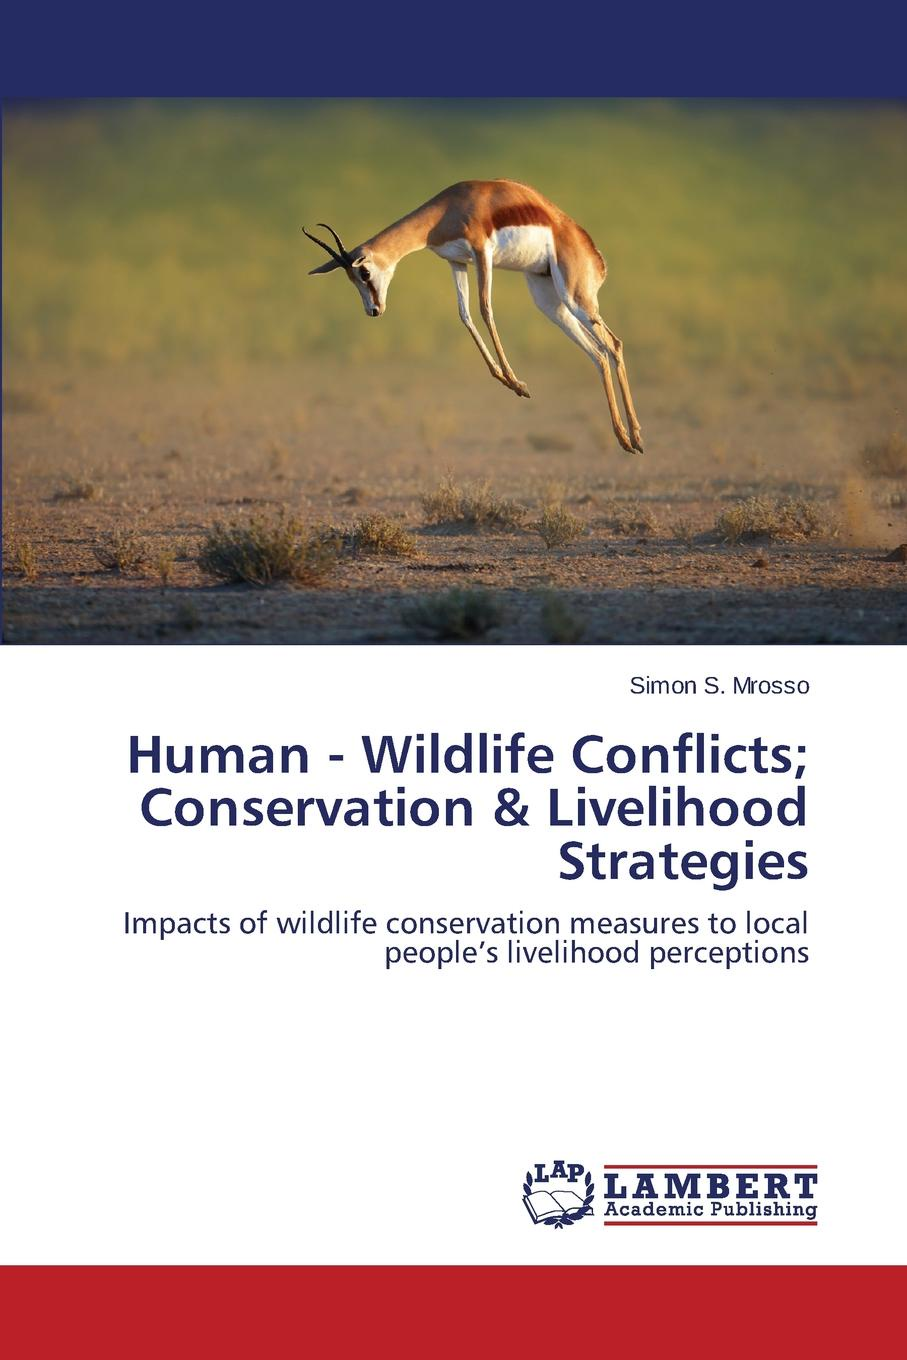 Mrosso Simon S. Human - Wildlife Conflicts; Conservation . Livelihood Strategies simulation of the effect of water conservation on crops in egypt